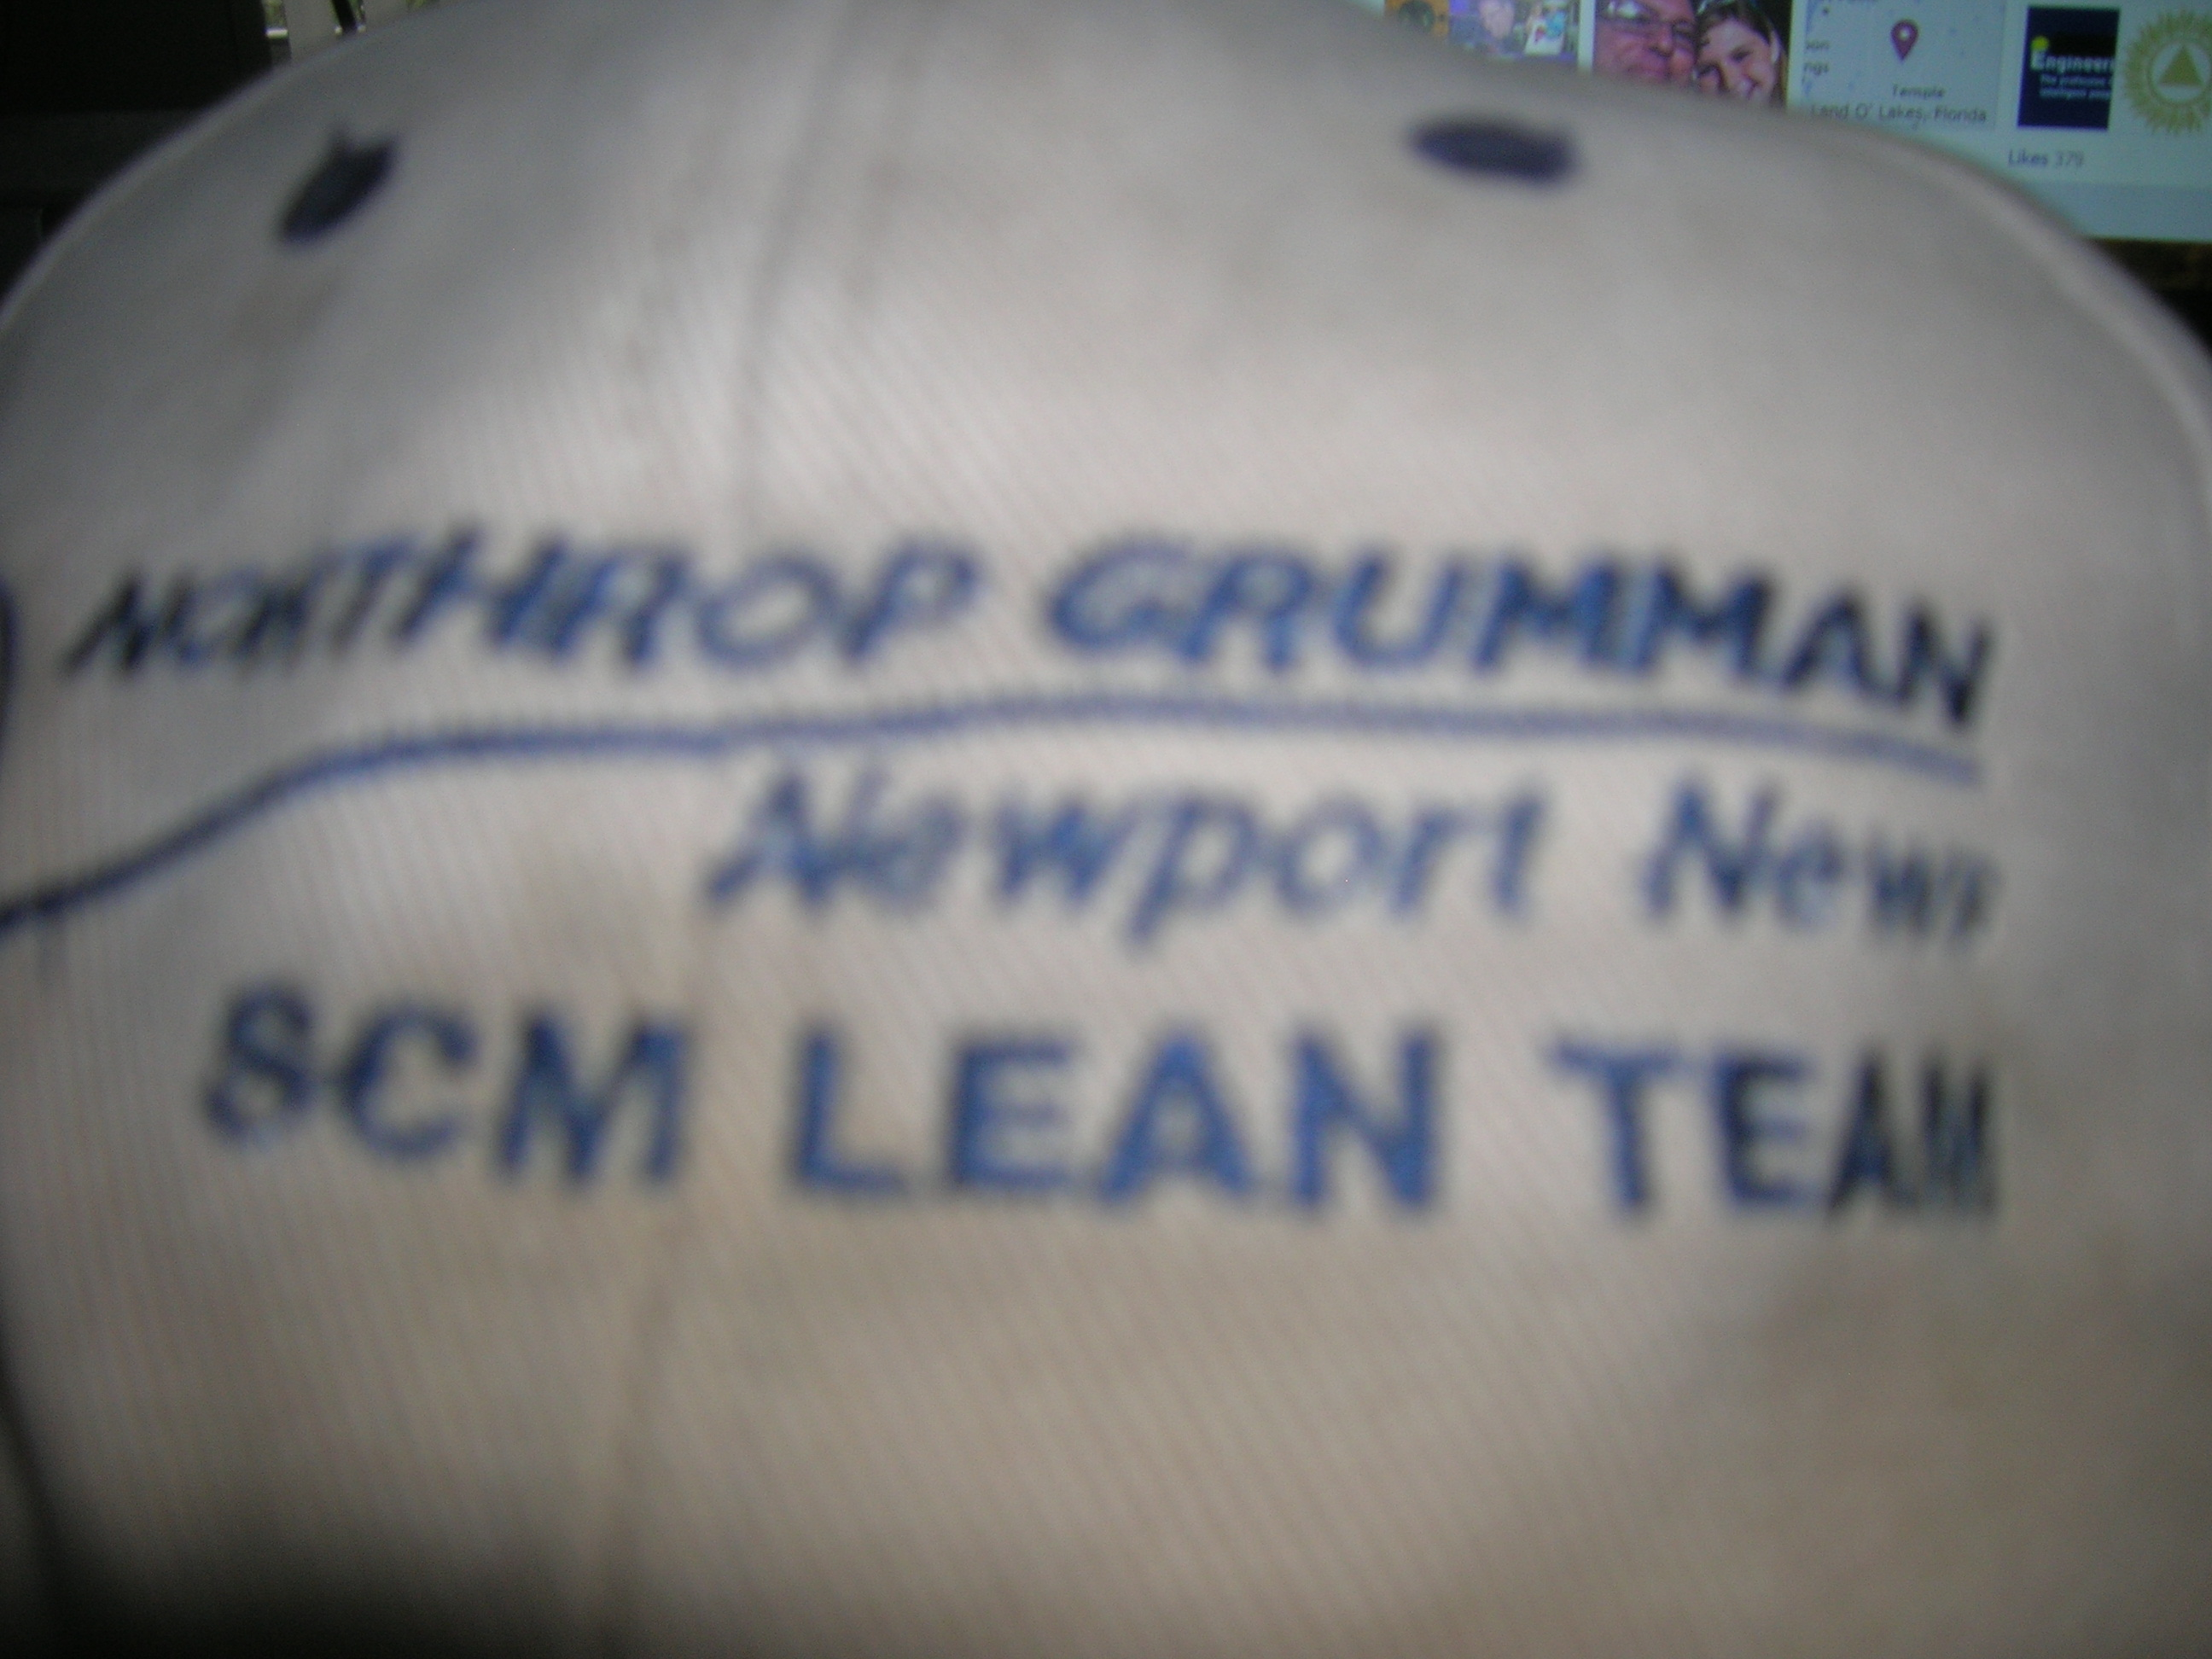 Lean Team Cap, Supply Chain Management